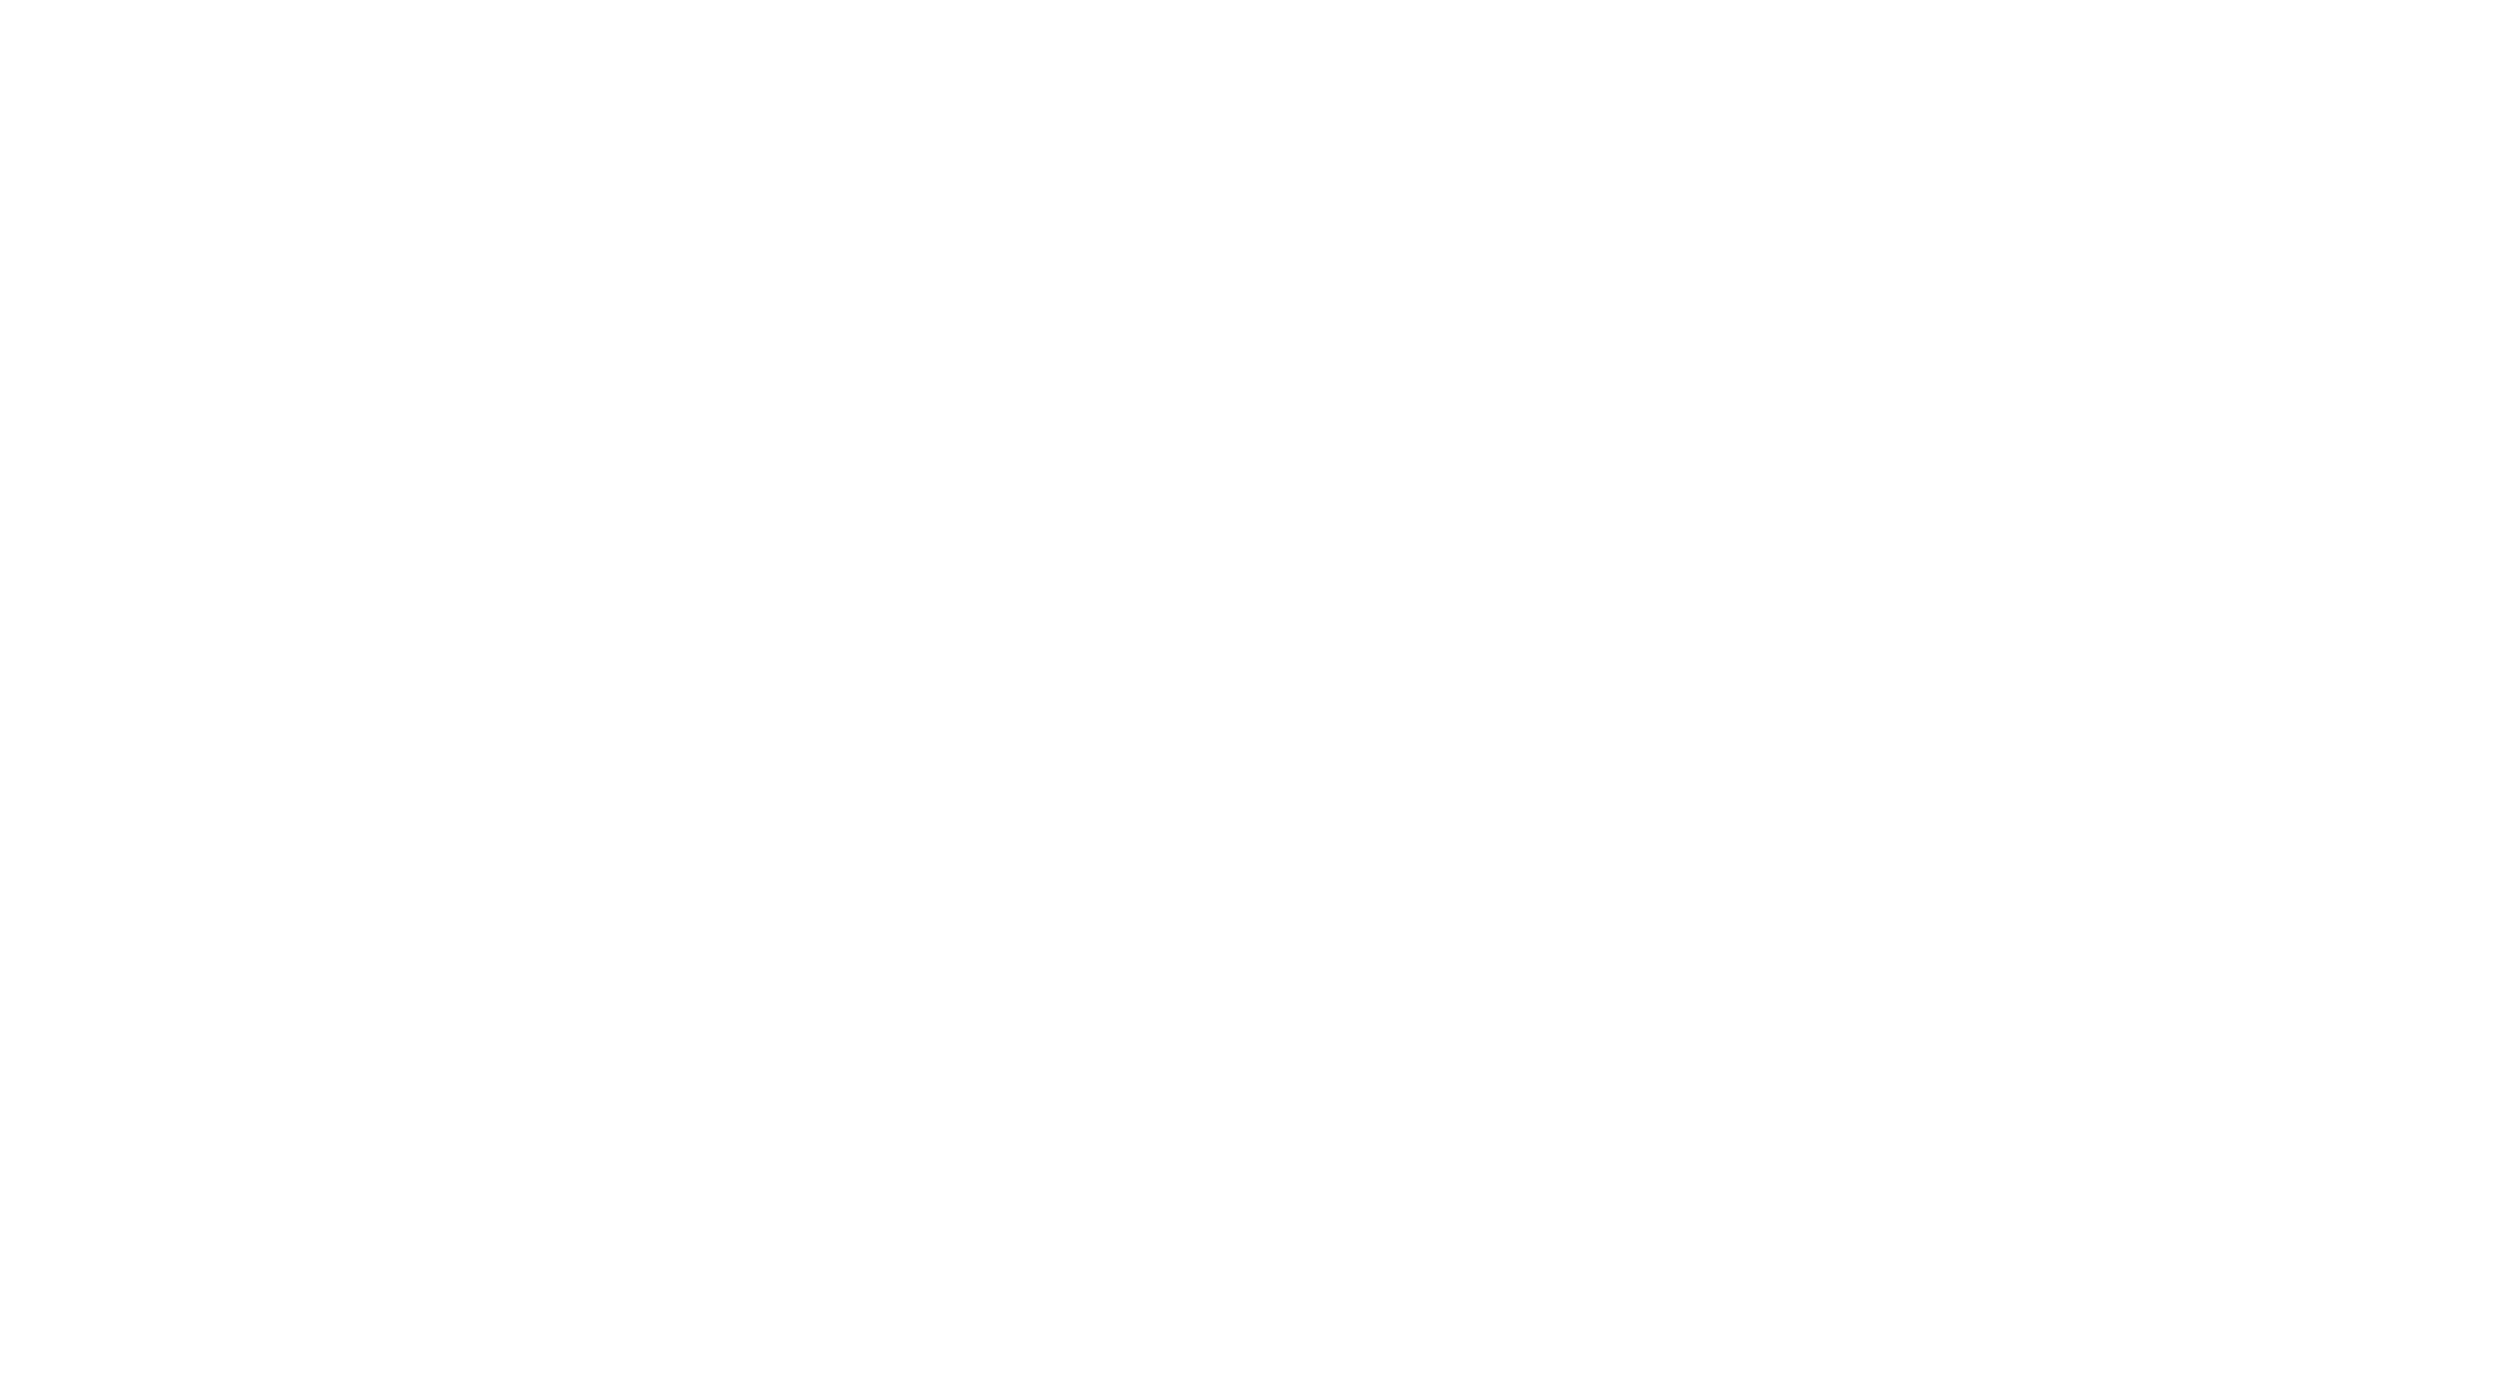 MexicanPost